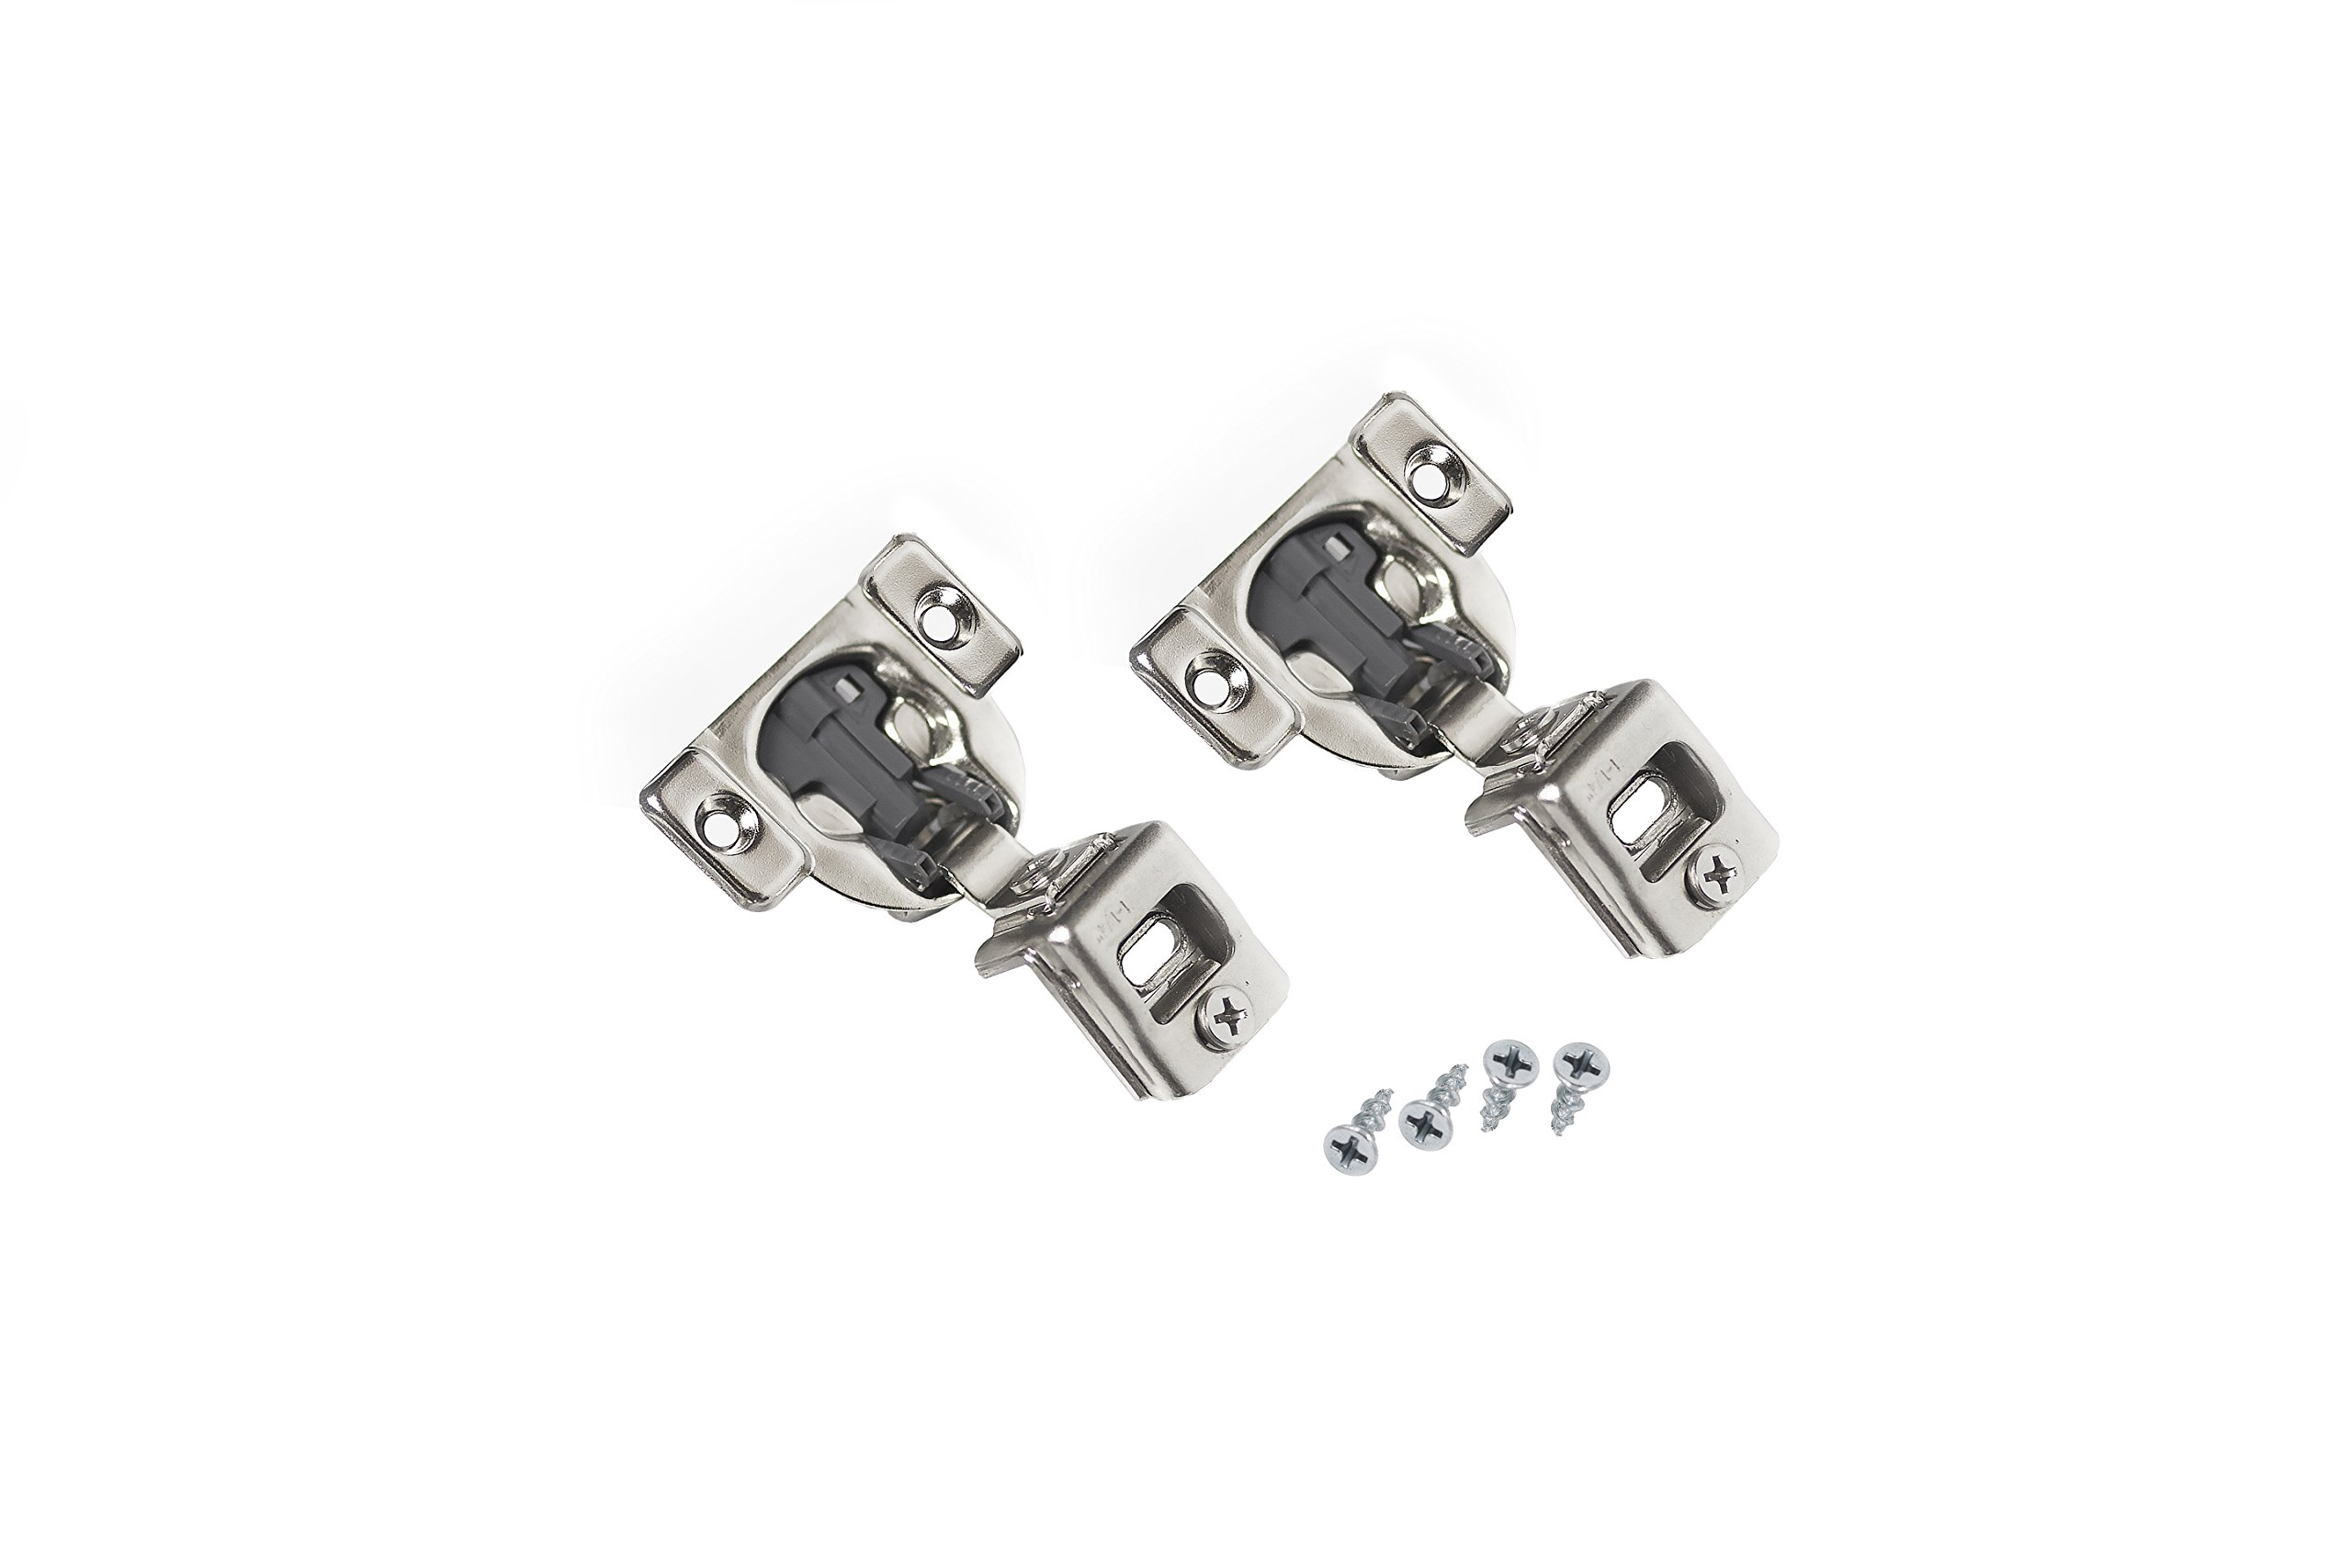 Comet Pro Hardware E55 1-1/4'' Compact Soft Close Face Frame Cabinet Door Hinges Full Overlay Nickel Plated, Screws are Included (40 Pack) by Comet Pro Hardware (Image #2)